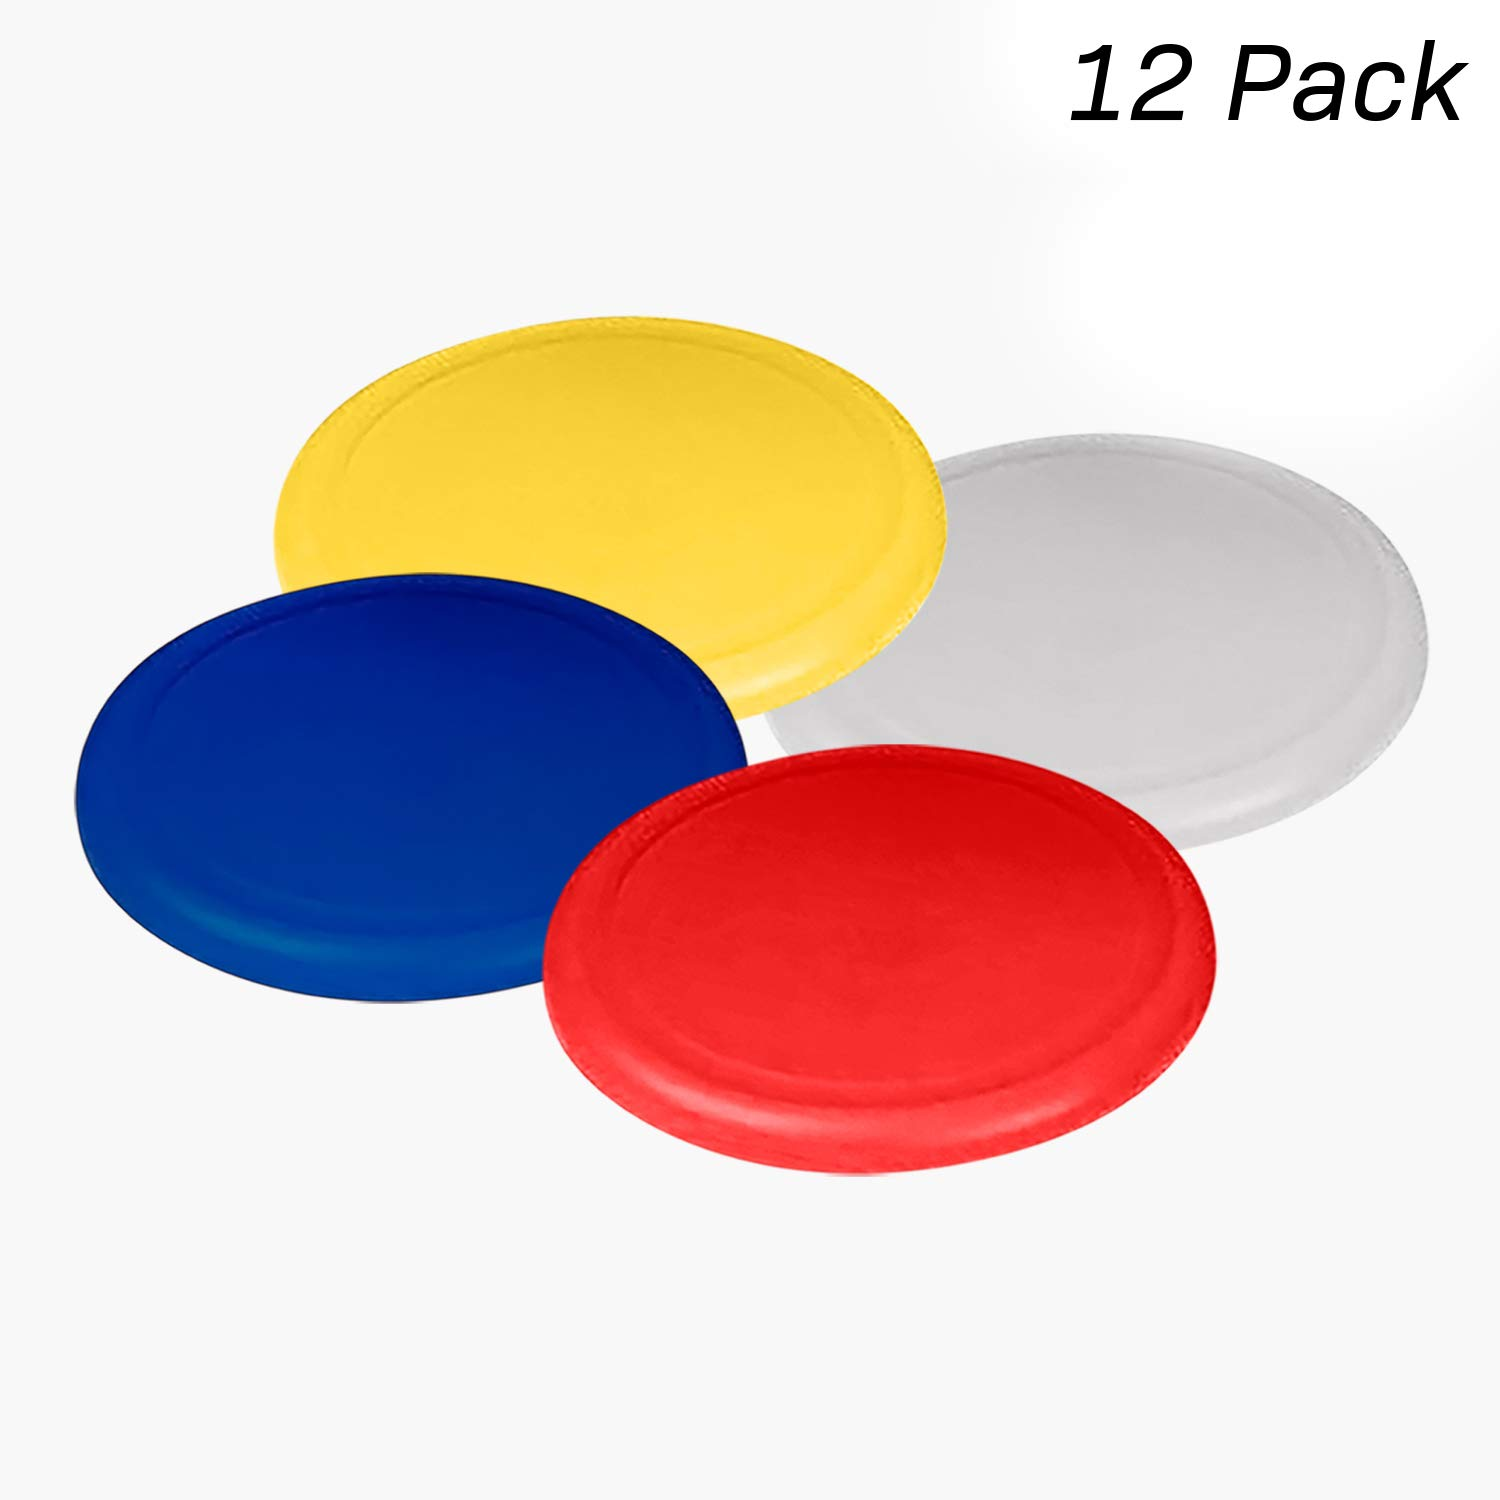 Kidsco Flying Discs, Frisbee's - 12 Pack 4 Bright Colors - for Boys and Girls